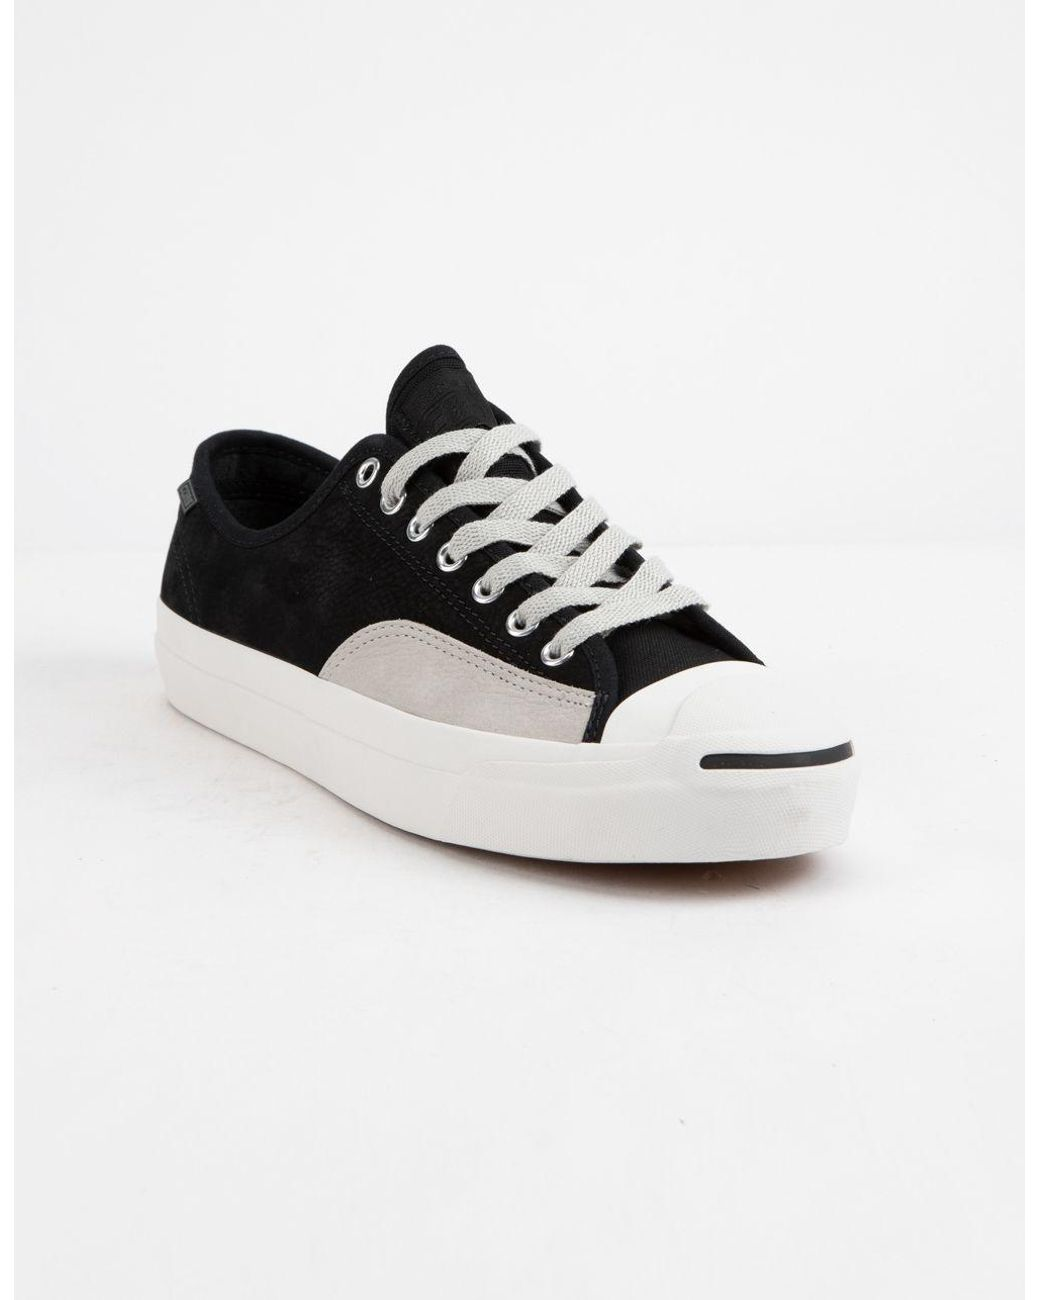 52460a0790fa Lyst - Converse Jack Purcell Pro Leather Low Top Shoes in Black